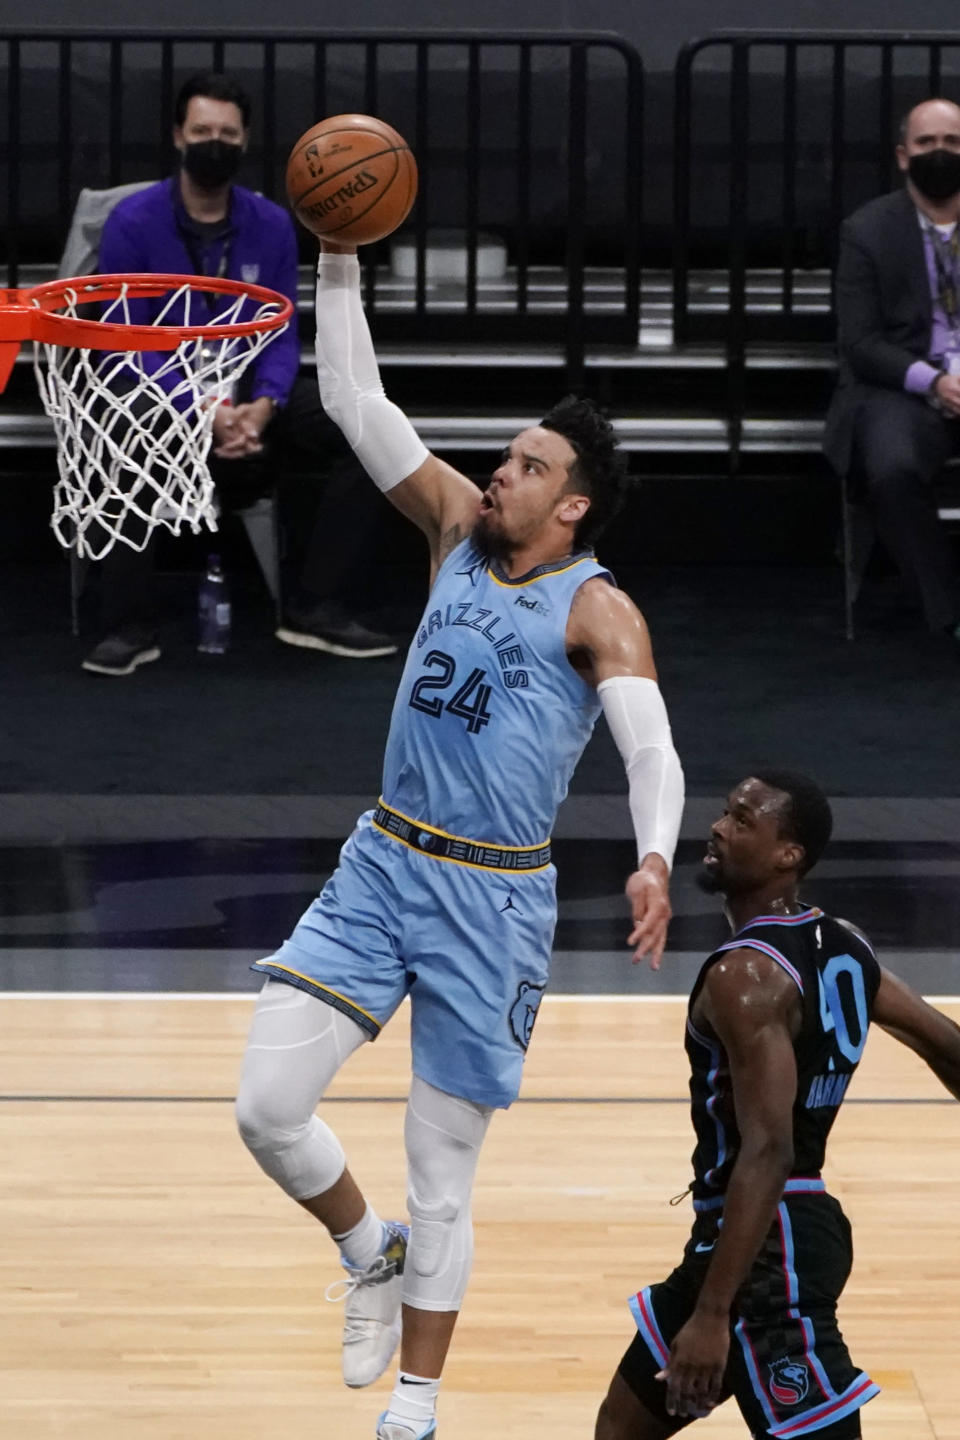 Memphis Grizzlies guard Dillon Brooks, left, goes to the basket past Sacramento Kings forward Harrison Barnes, right, during the first half of an NBA basketball game in Sacramento, Calif., Sunday, Feb. 14, 2021. (AP Photo/Rich Pedroncelli)